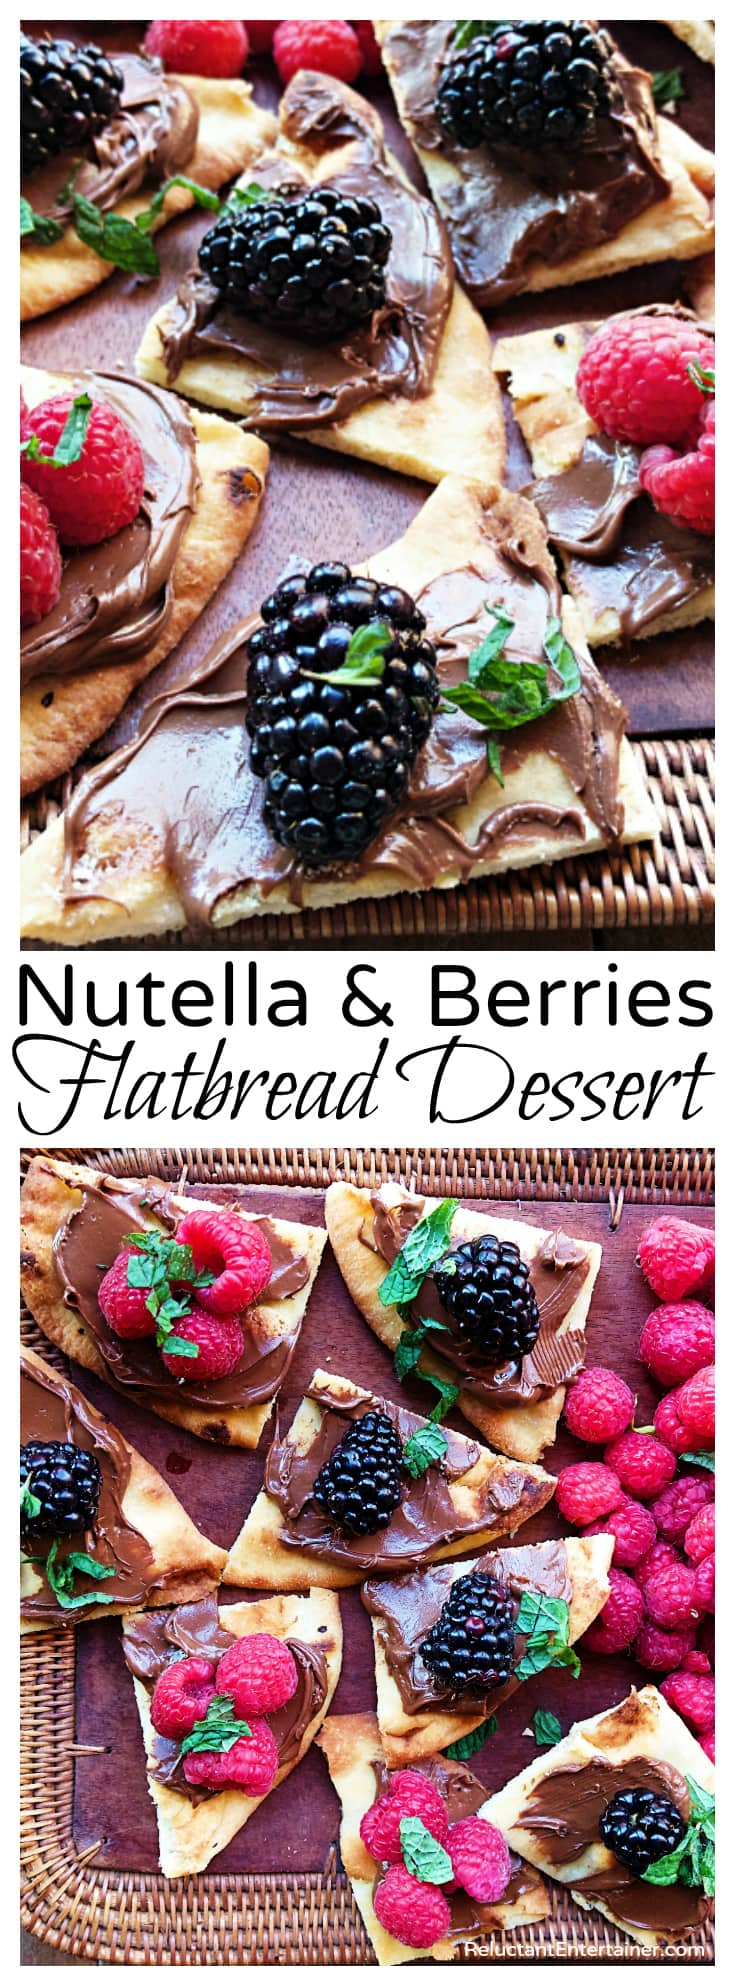 Nutella & Berries Flatbread Dessert